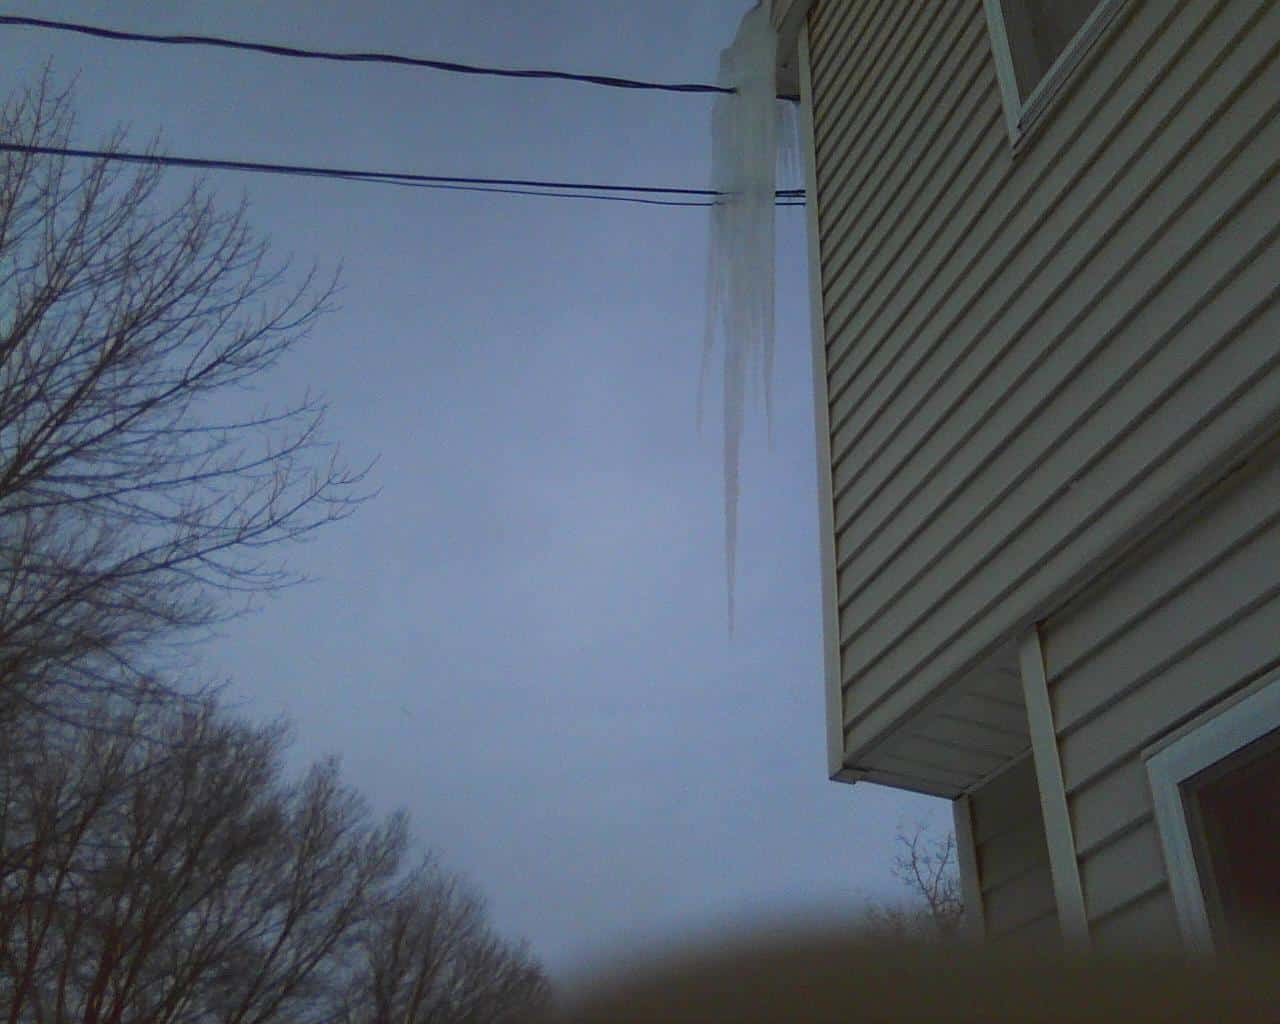 Ice Dams in Connecticut